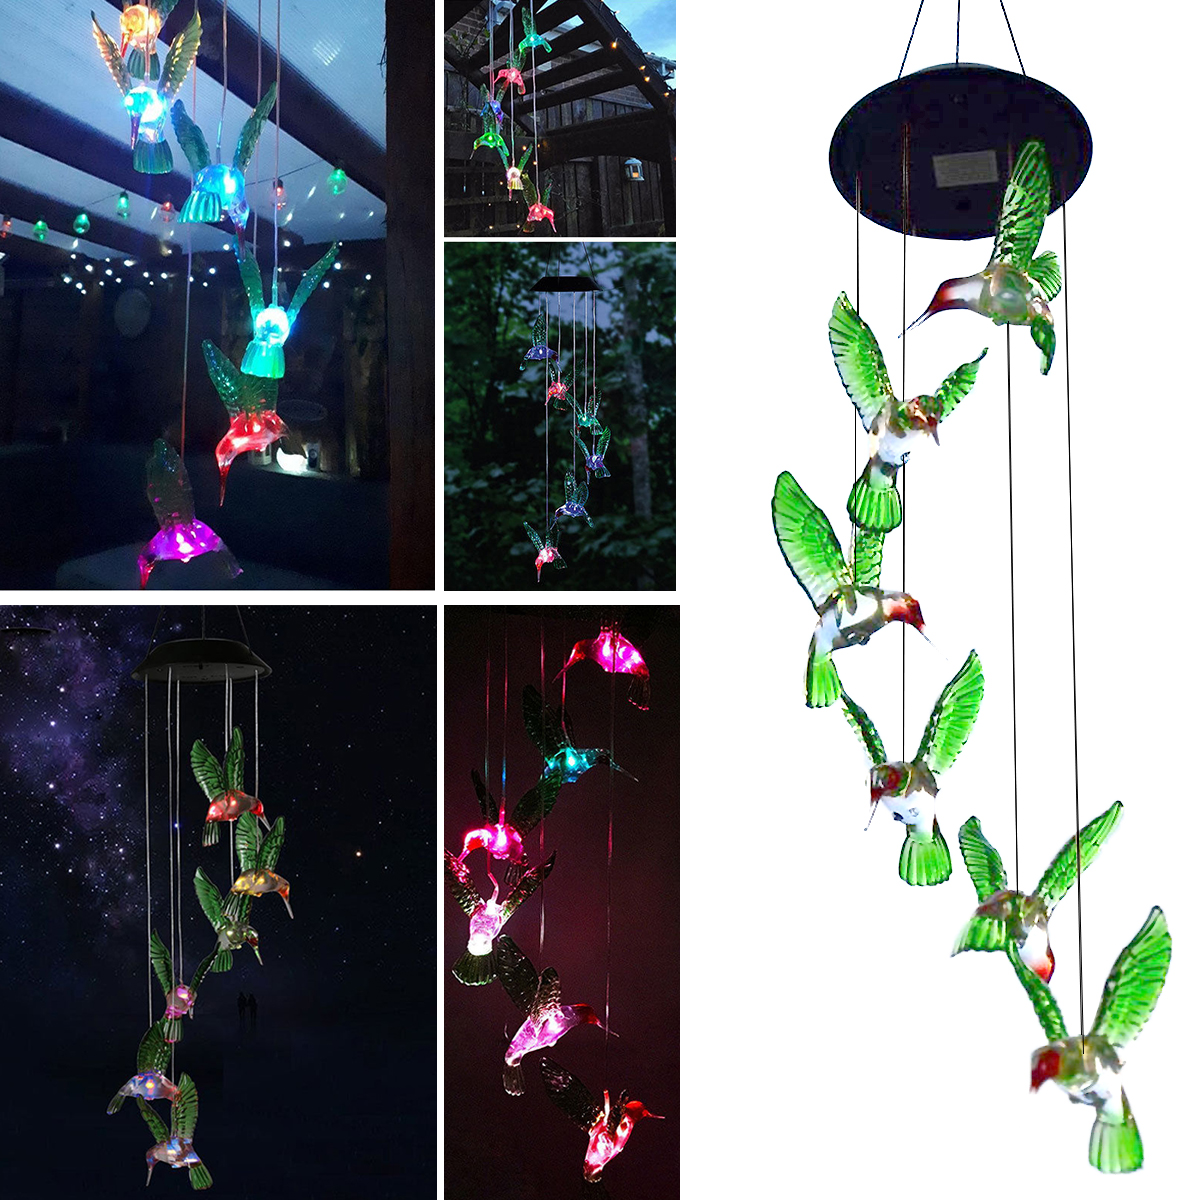 Hummingbird Solar Powered Bird Wind Chimes Outdoor Changing Color LED Bird Spinner Garden Decoration by